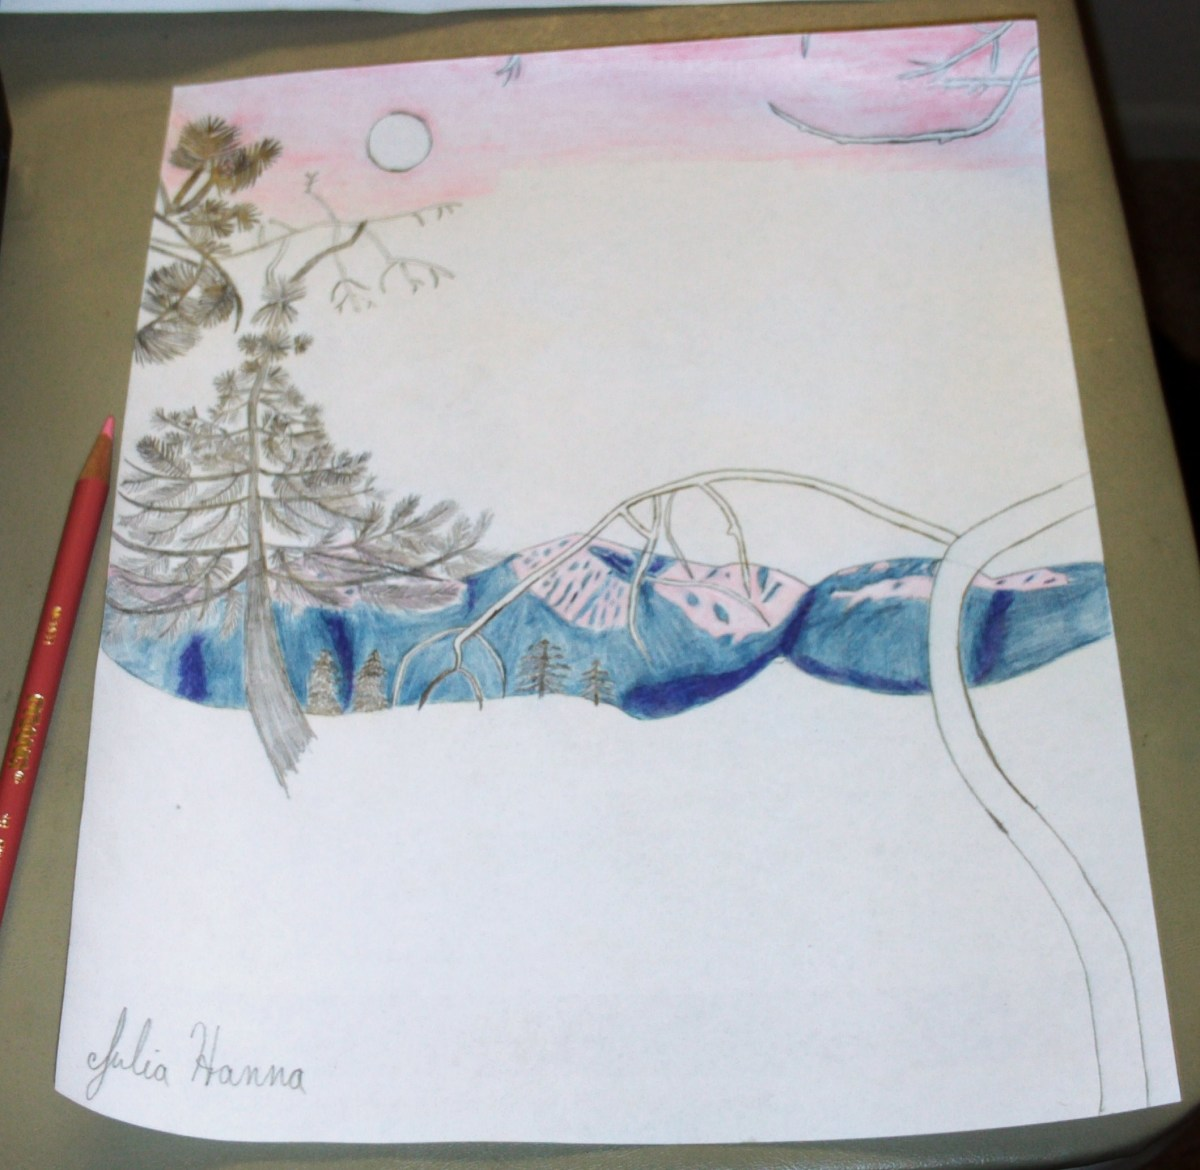 In this phase of the sketch I am adding the light pink color to the sky.